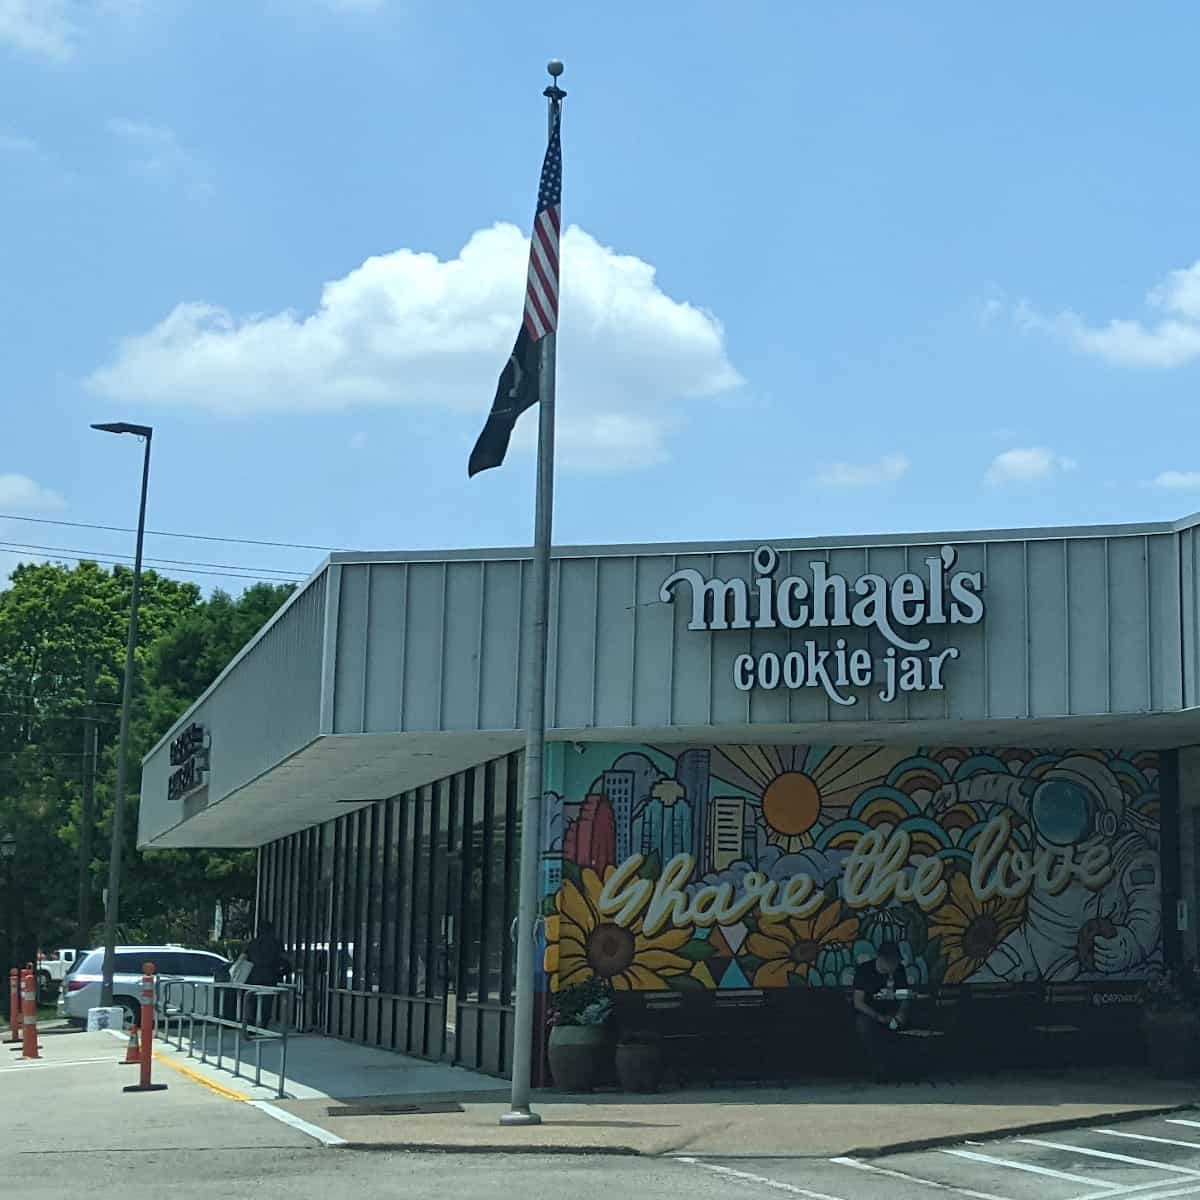 Michaels Cookie Jar Mural Share the Love